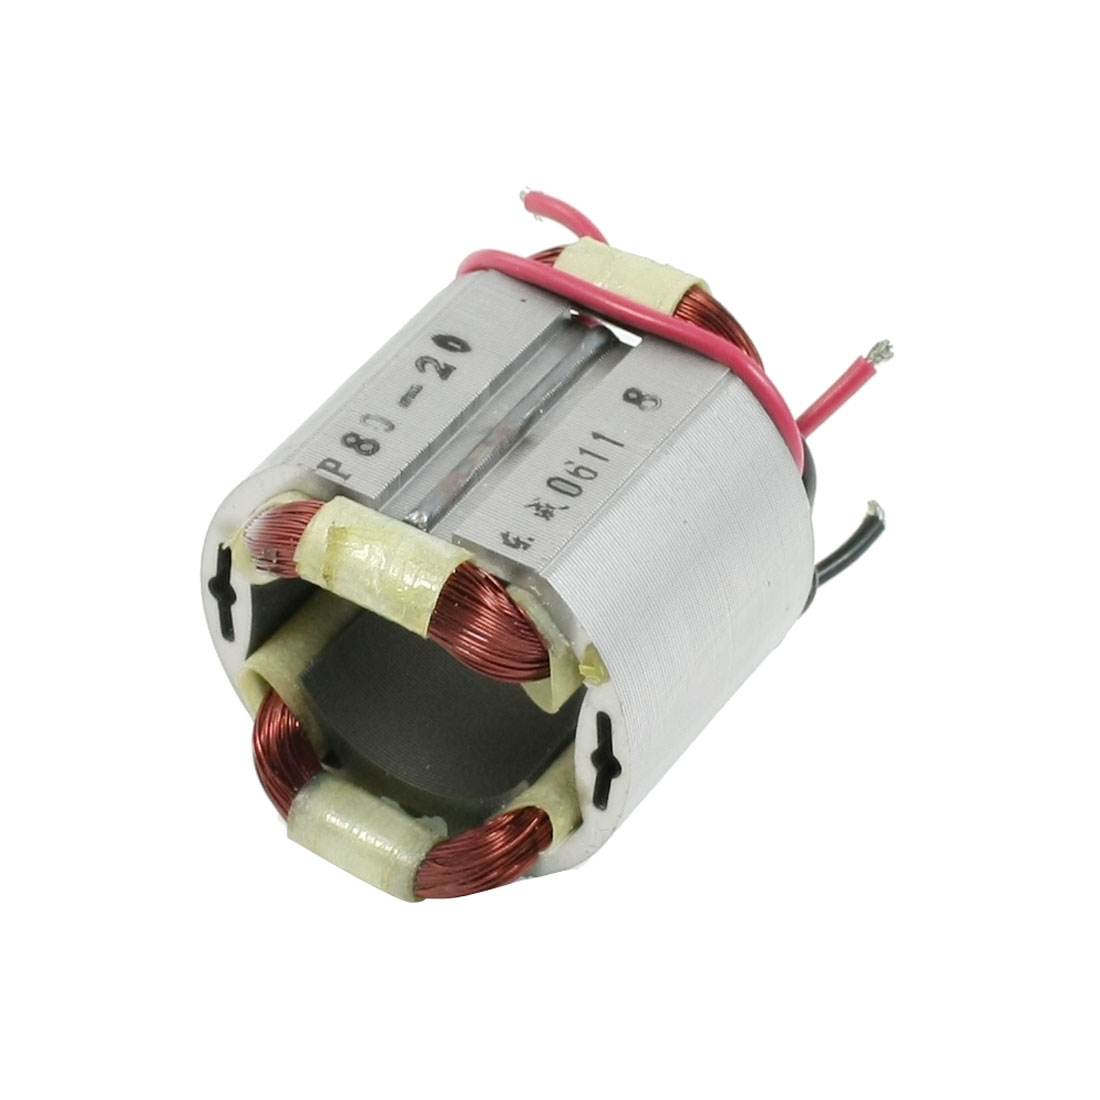 AC220V Stainless Steel Shell 4 Cables Electric Motor Stator for Baltur P80-20